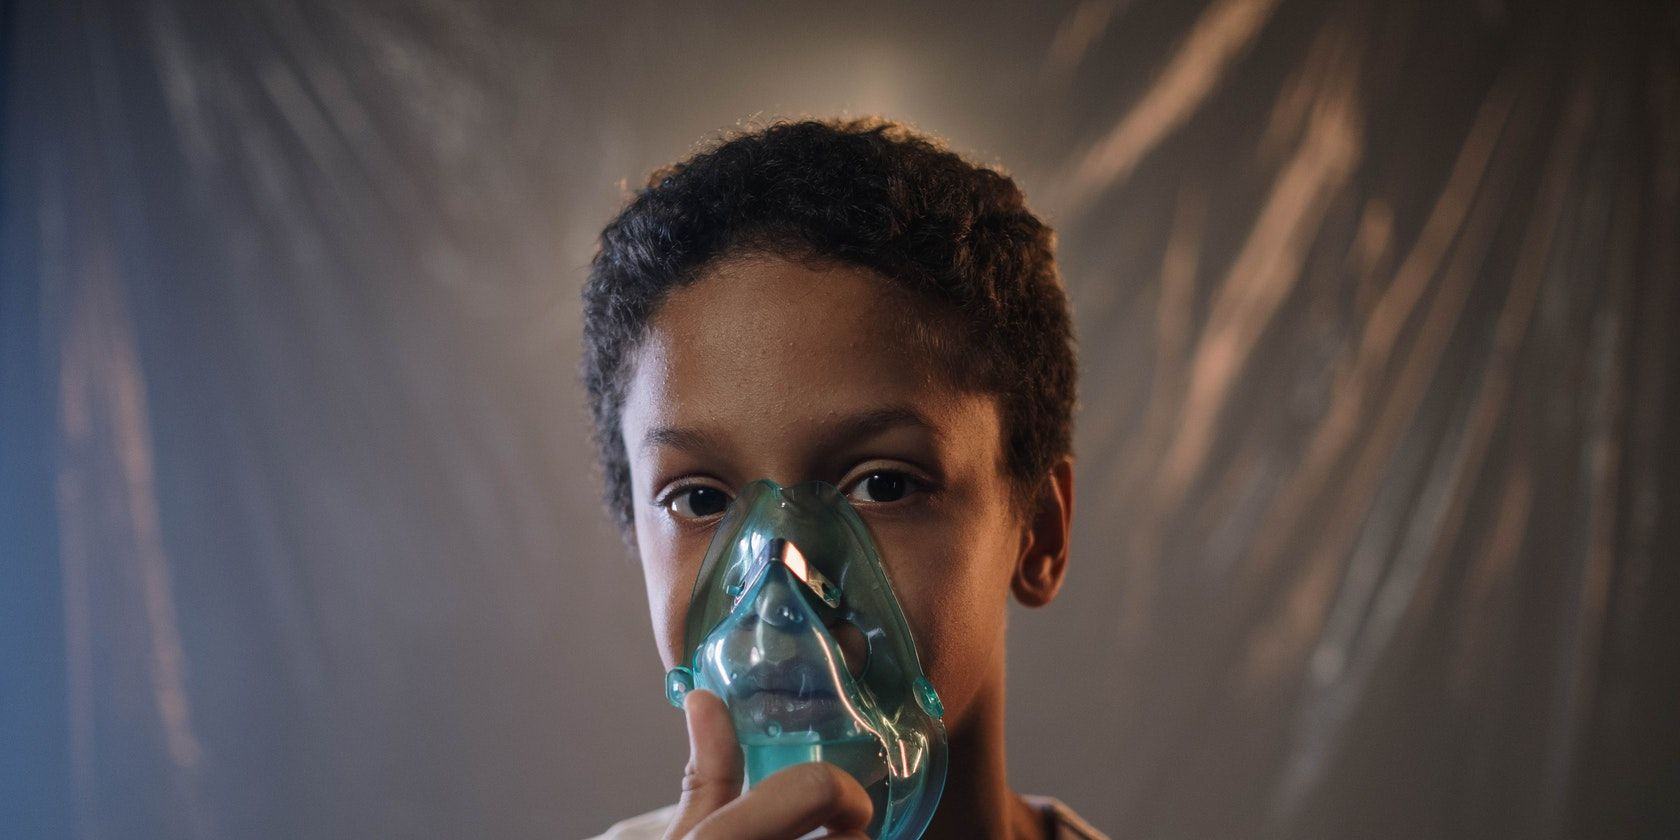 Having Difficulty with Your Asthma? Here Are 5 Apps You Need to Use